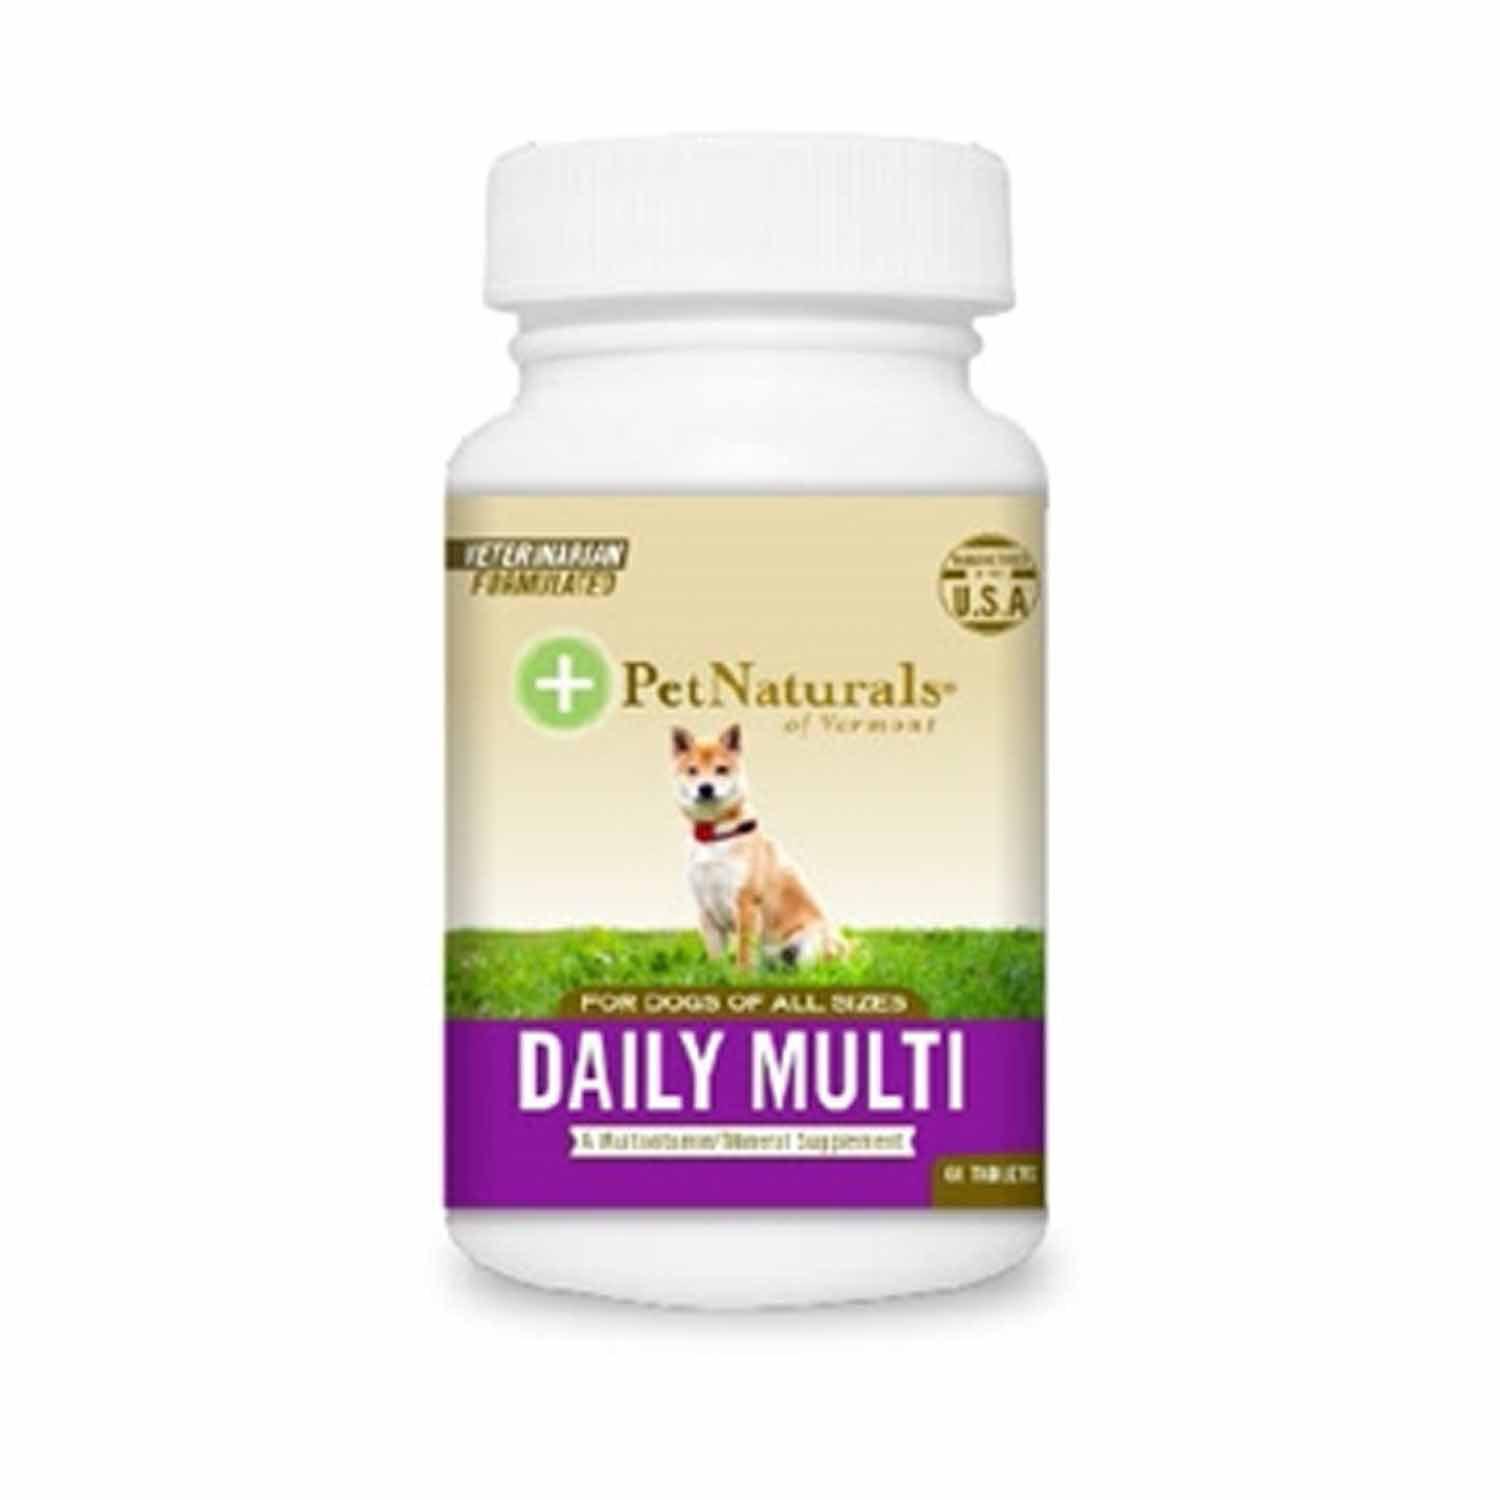 Pet Naturals Daily Multi Tablets Dog Supplement